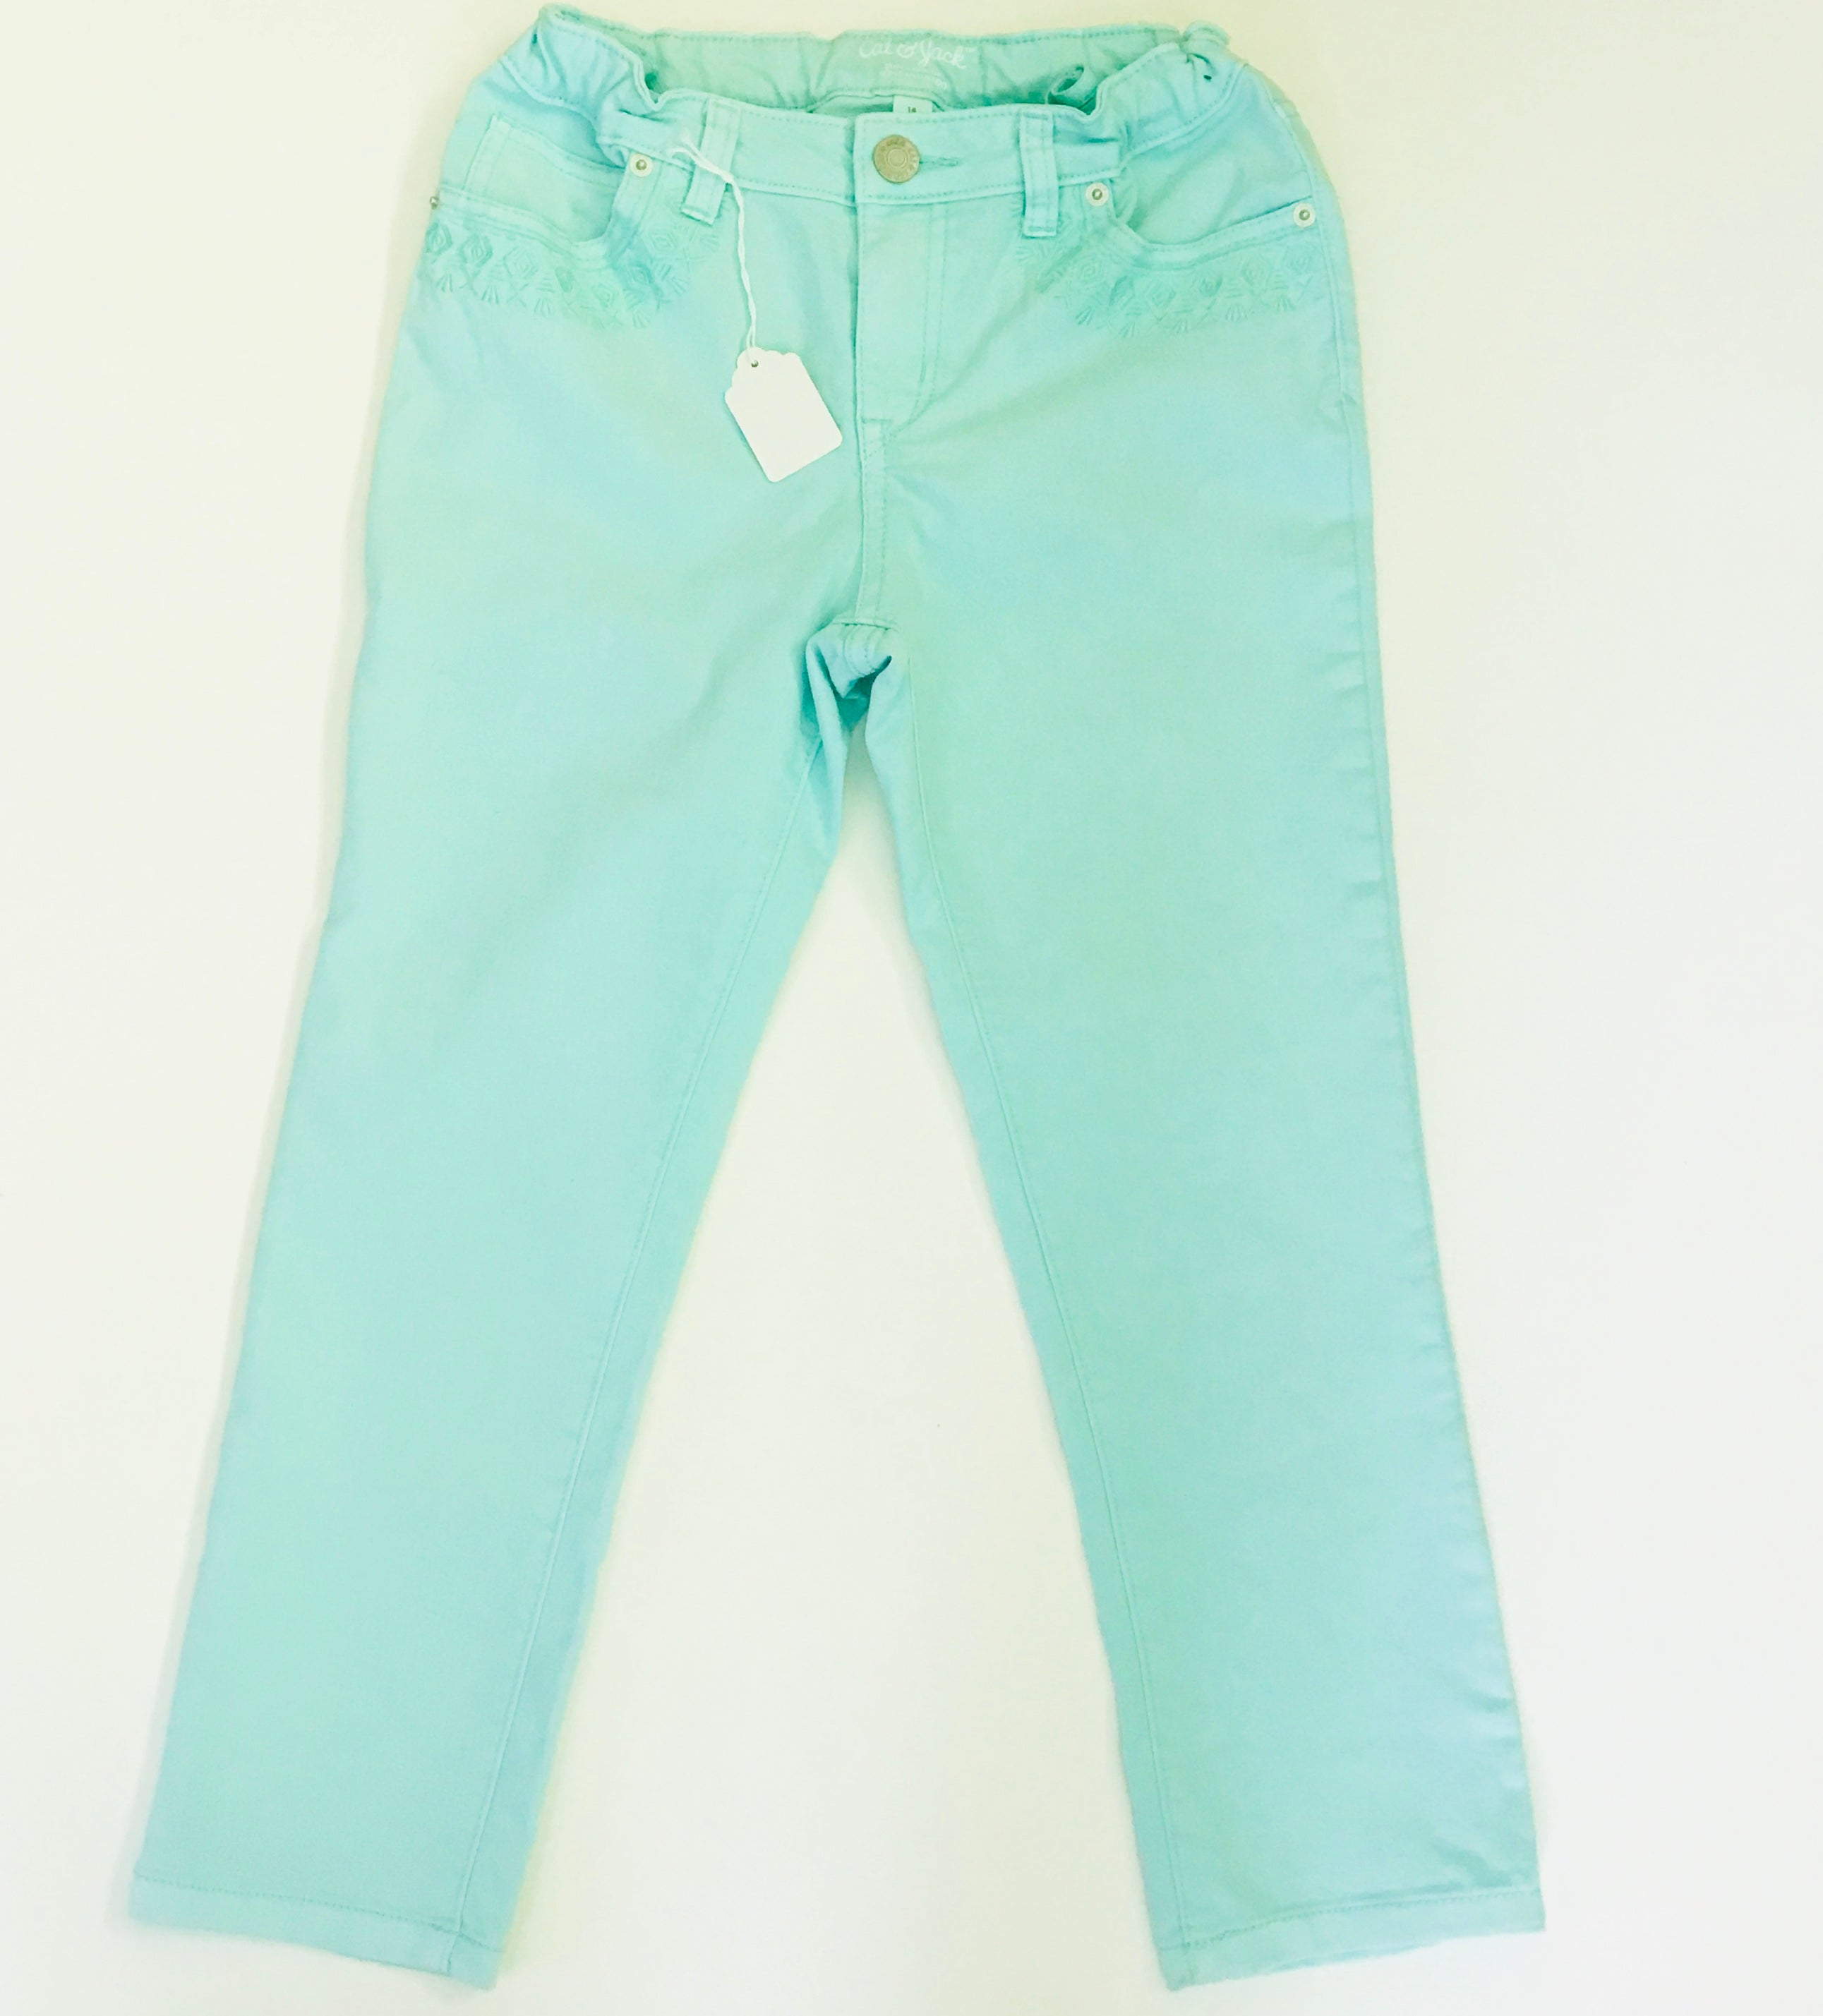 Girls Jeans By Cat & Jack